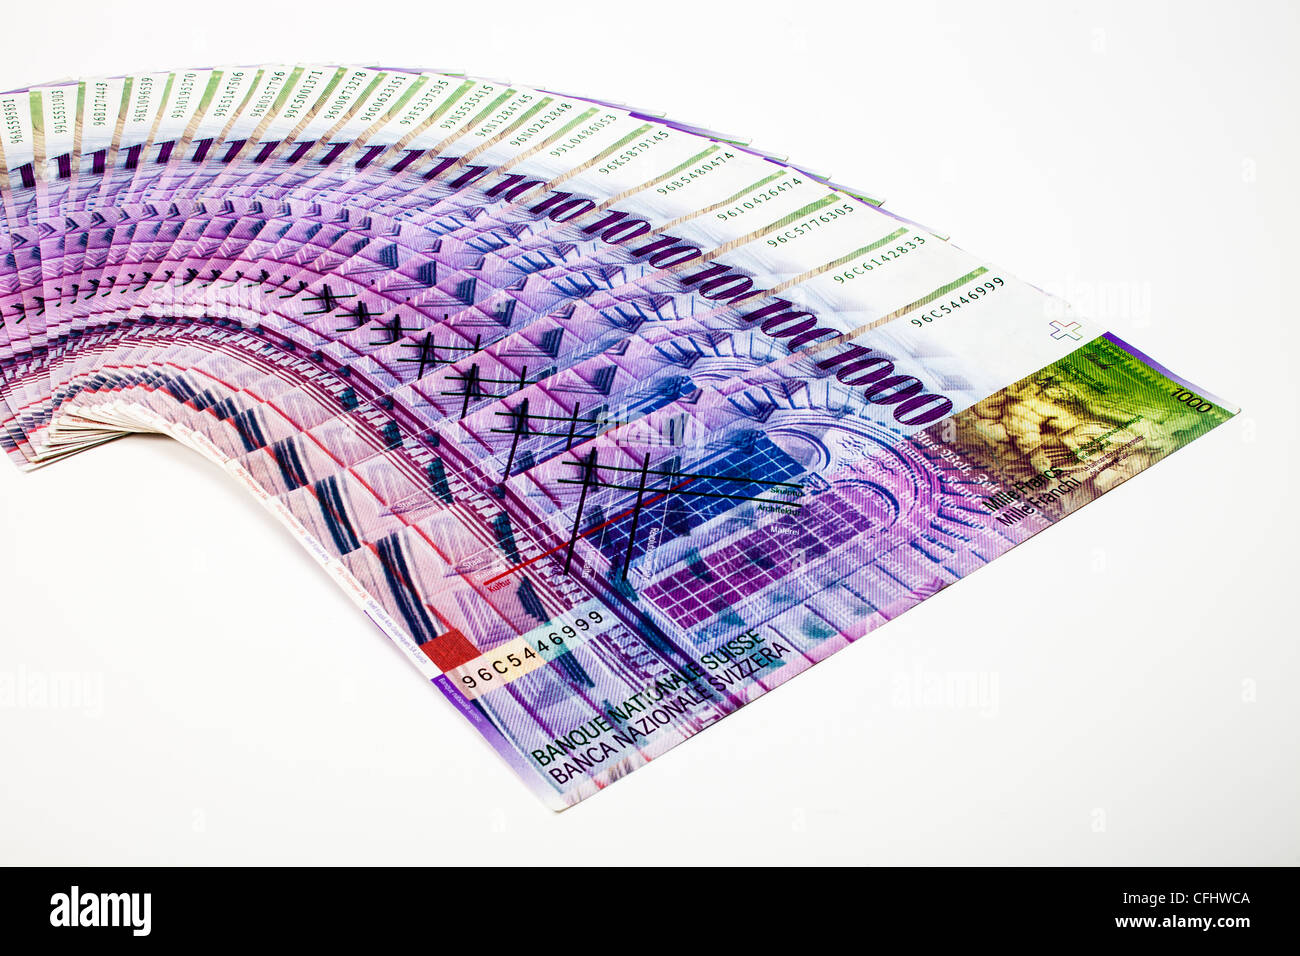 Swiss banknotes, several thousand of Swiss Francs, cash, paper money Stock Photo